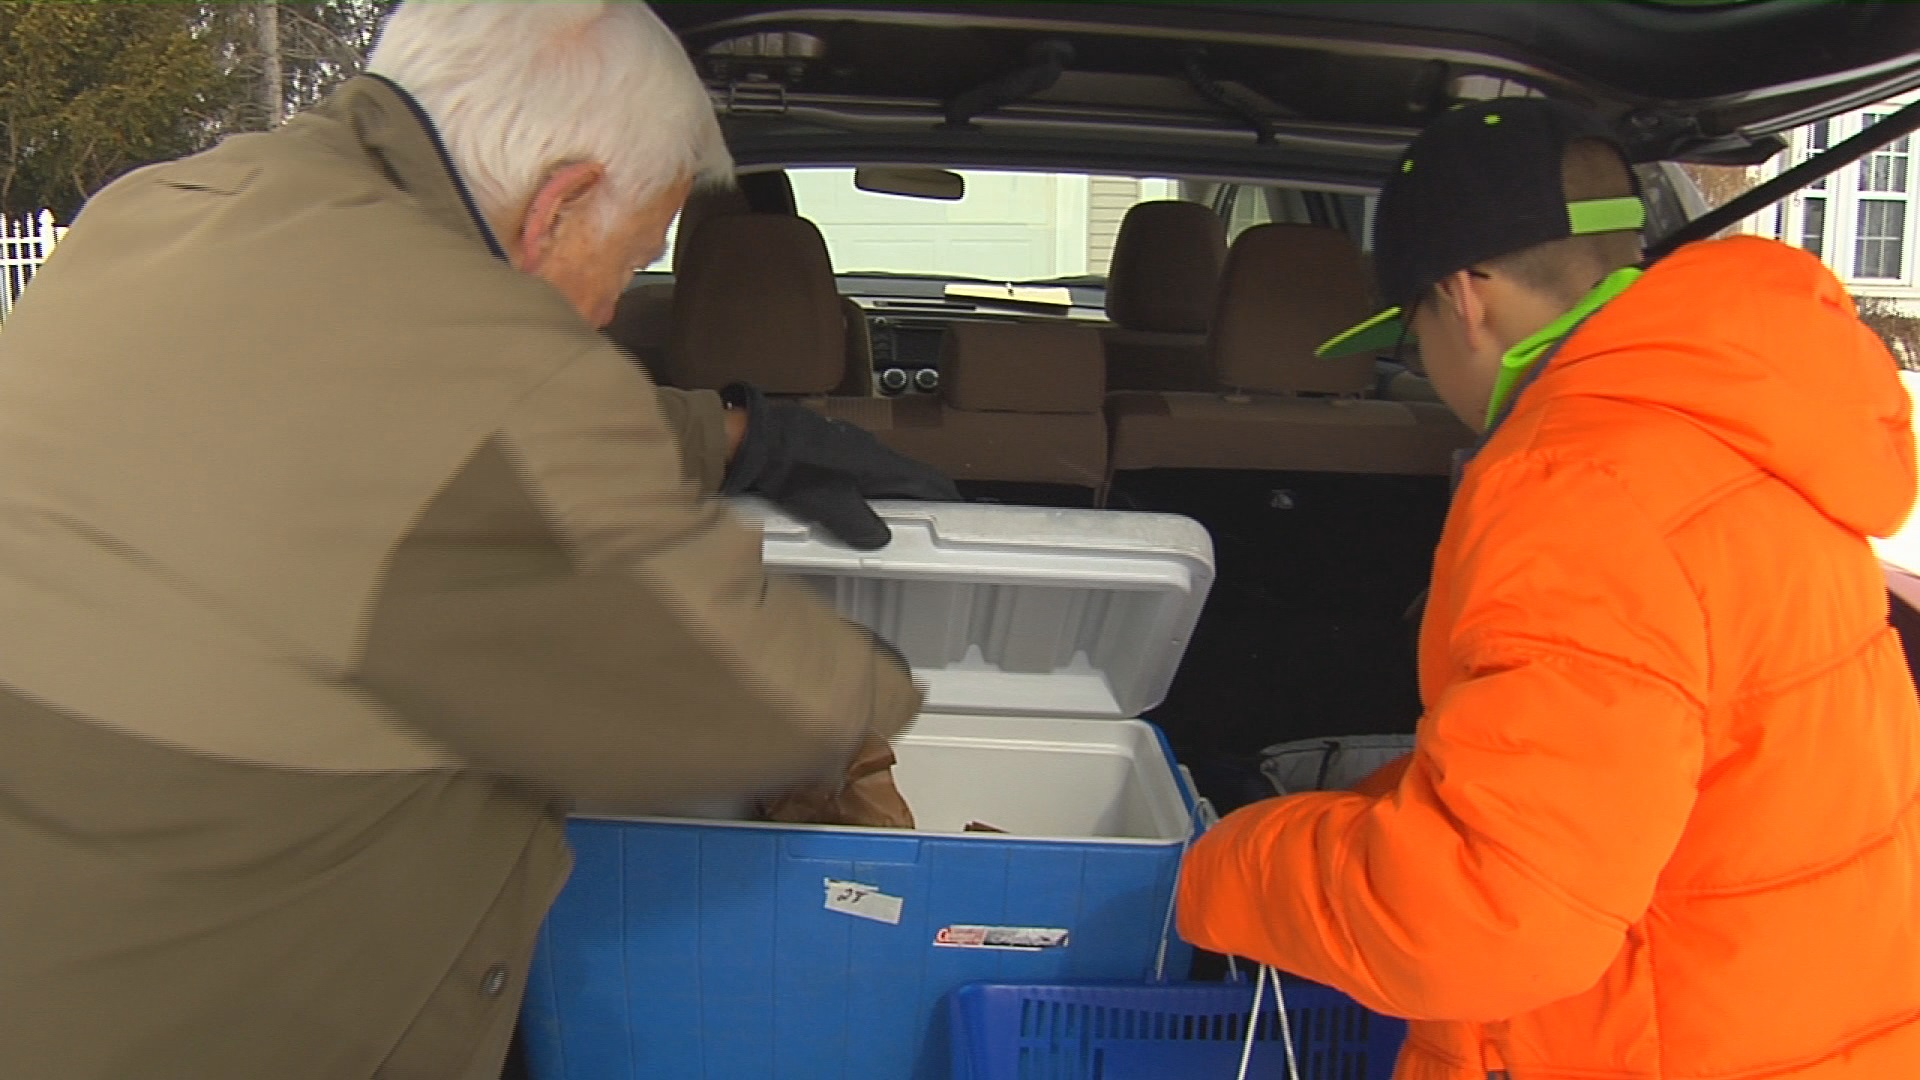 02-18-15 meals on wheels_21848